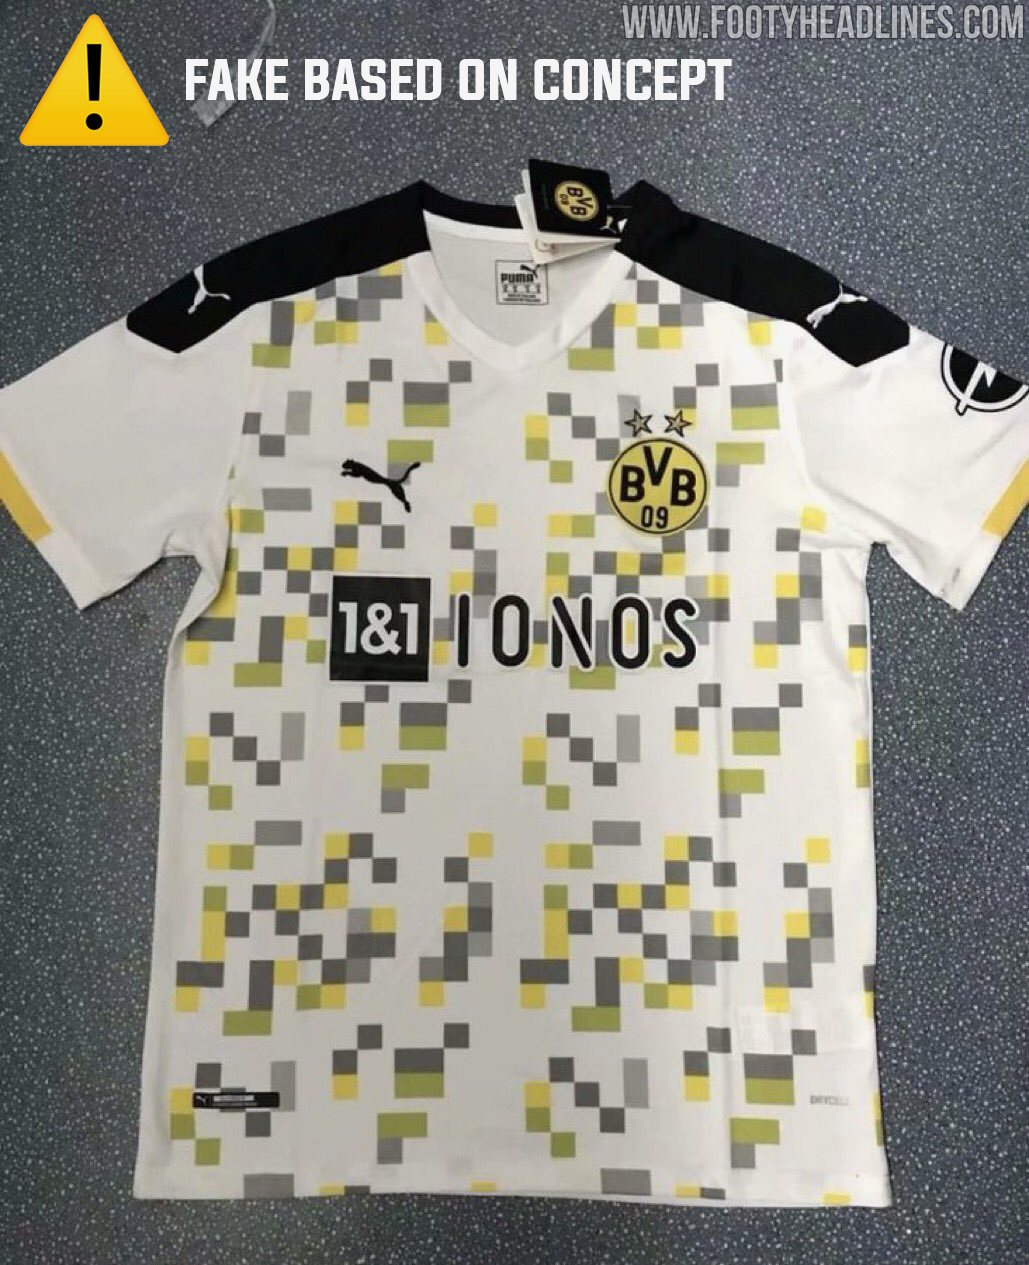 Dortmund 20 21 Third Kit L E A K E D Prediction Footy Headlines